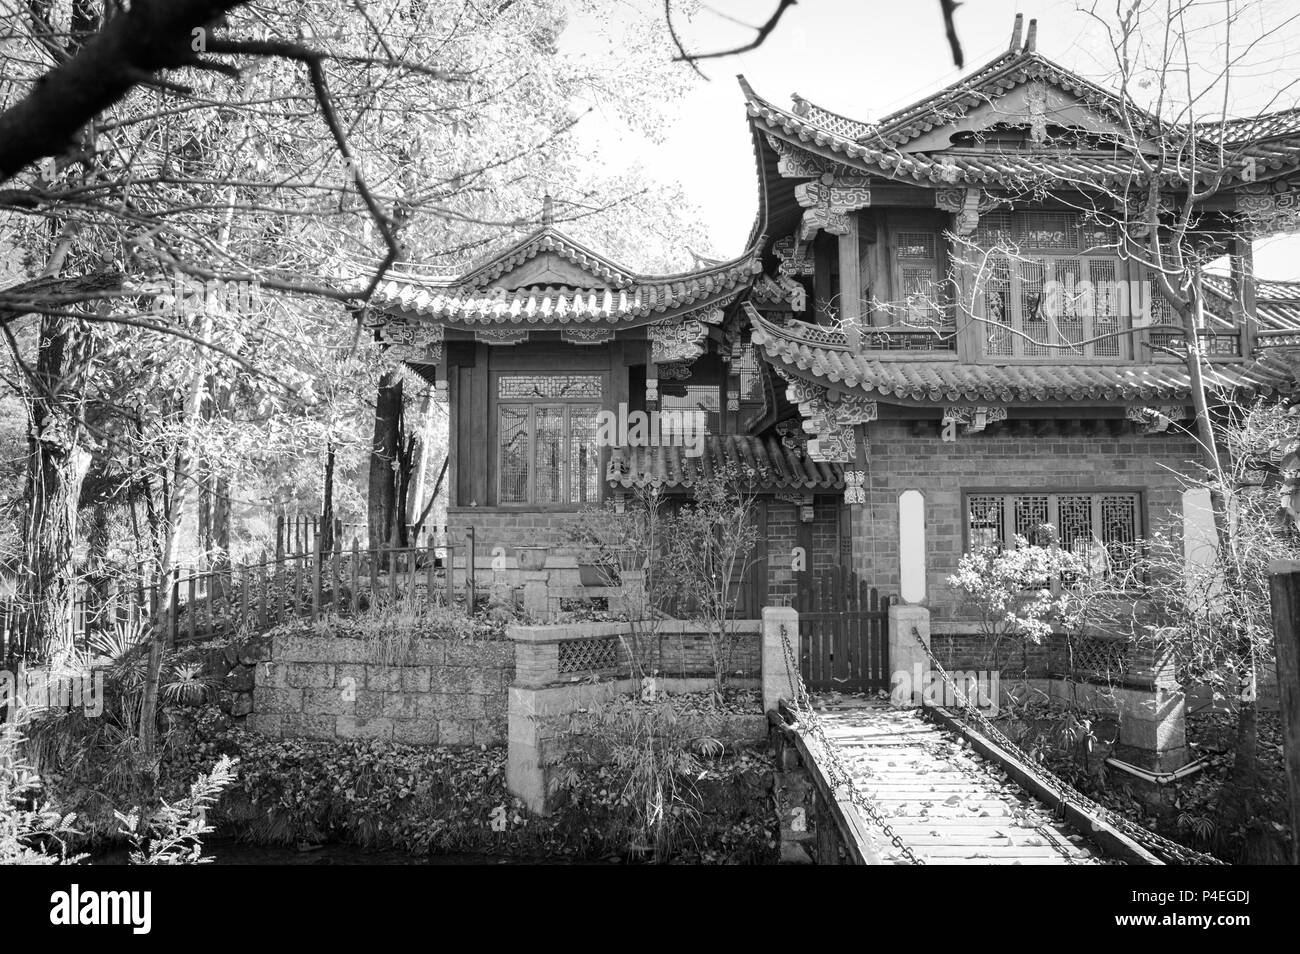 Architecture of a Buddhist Temple (Lijiang, Yunnan, China) - Stock Image